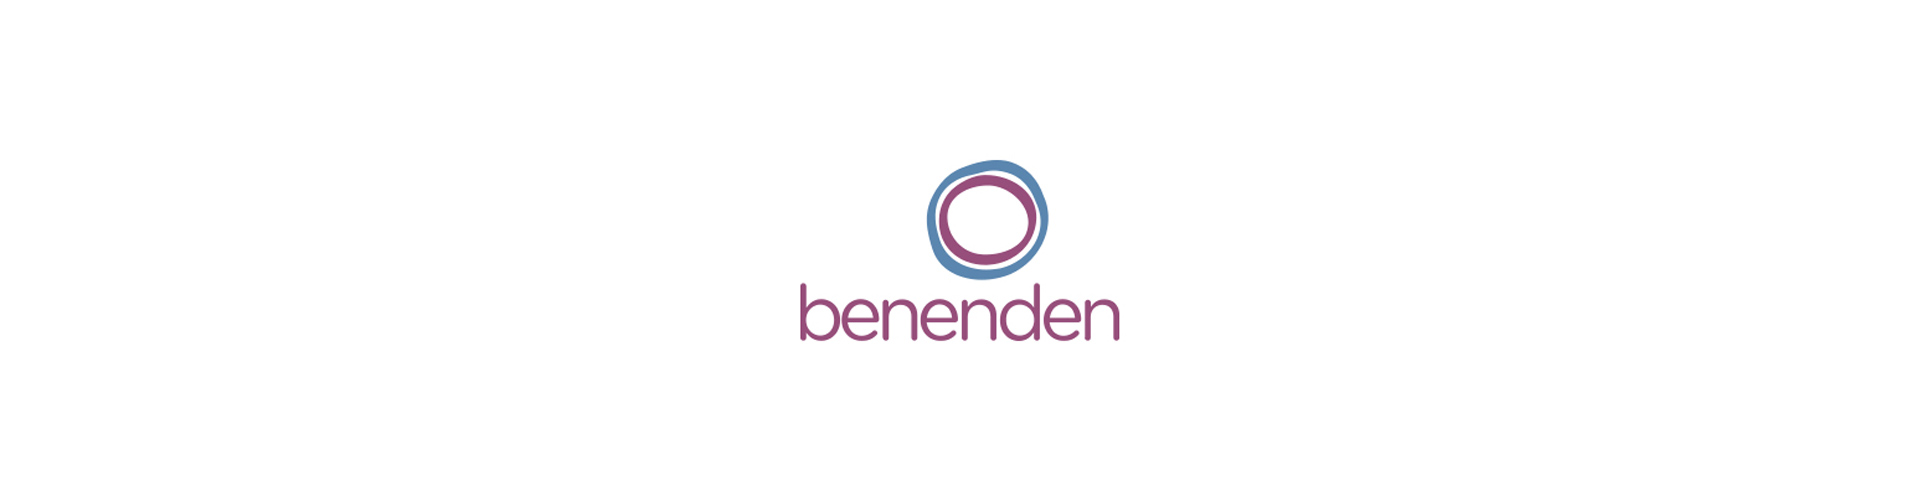 Benenden enters partnership with Hood Group to launch new home insurance product